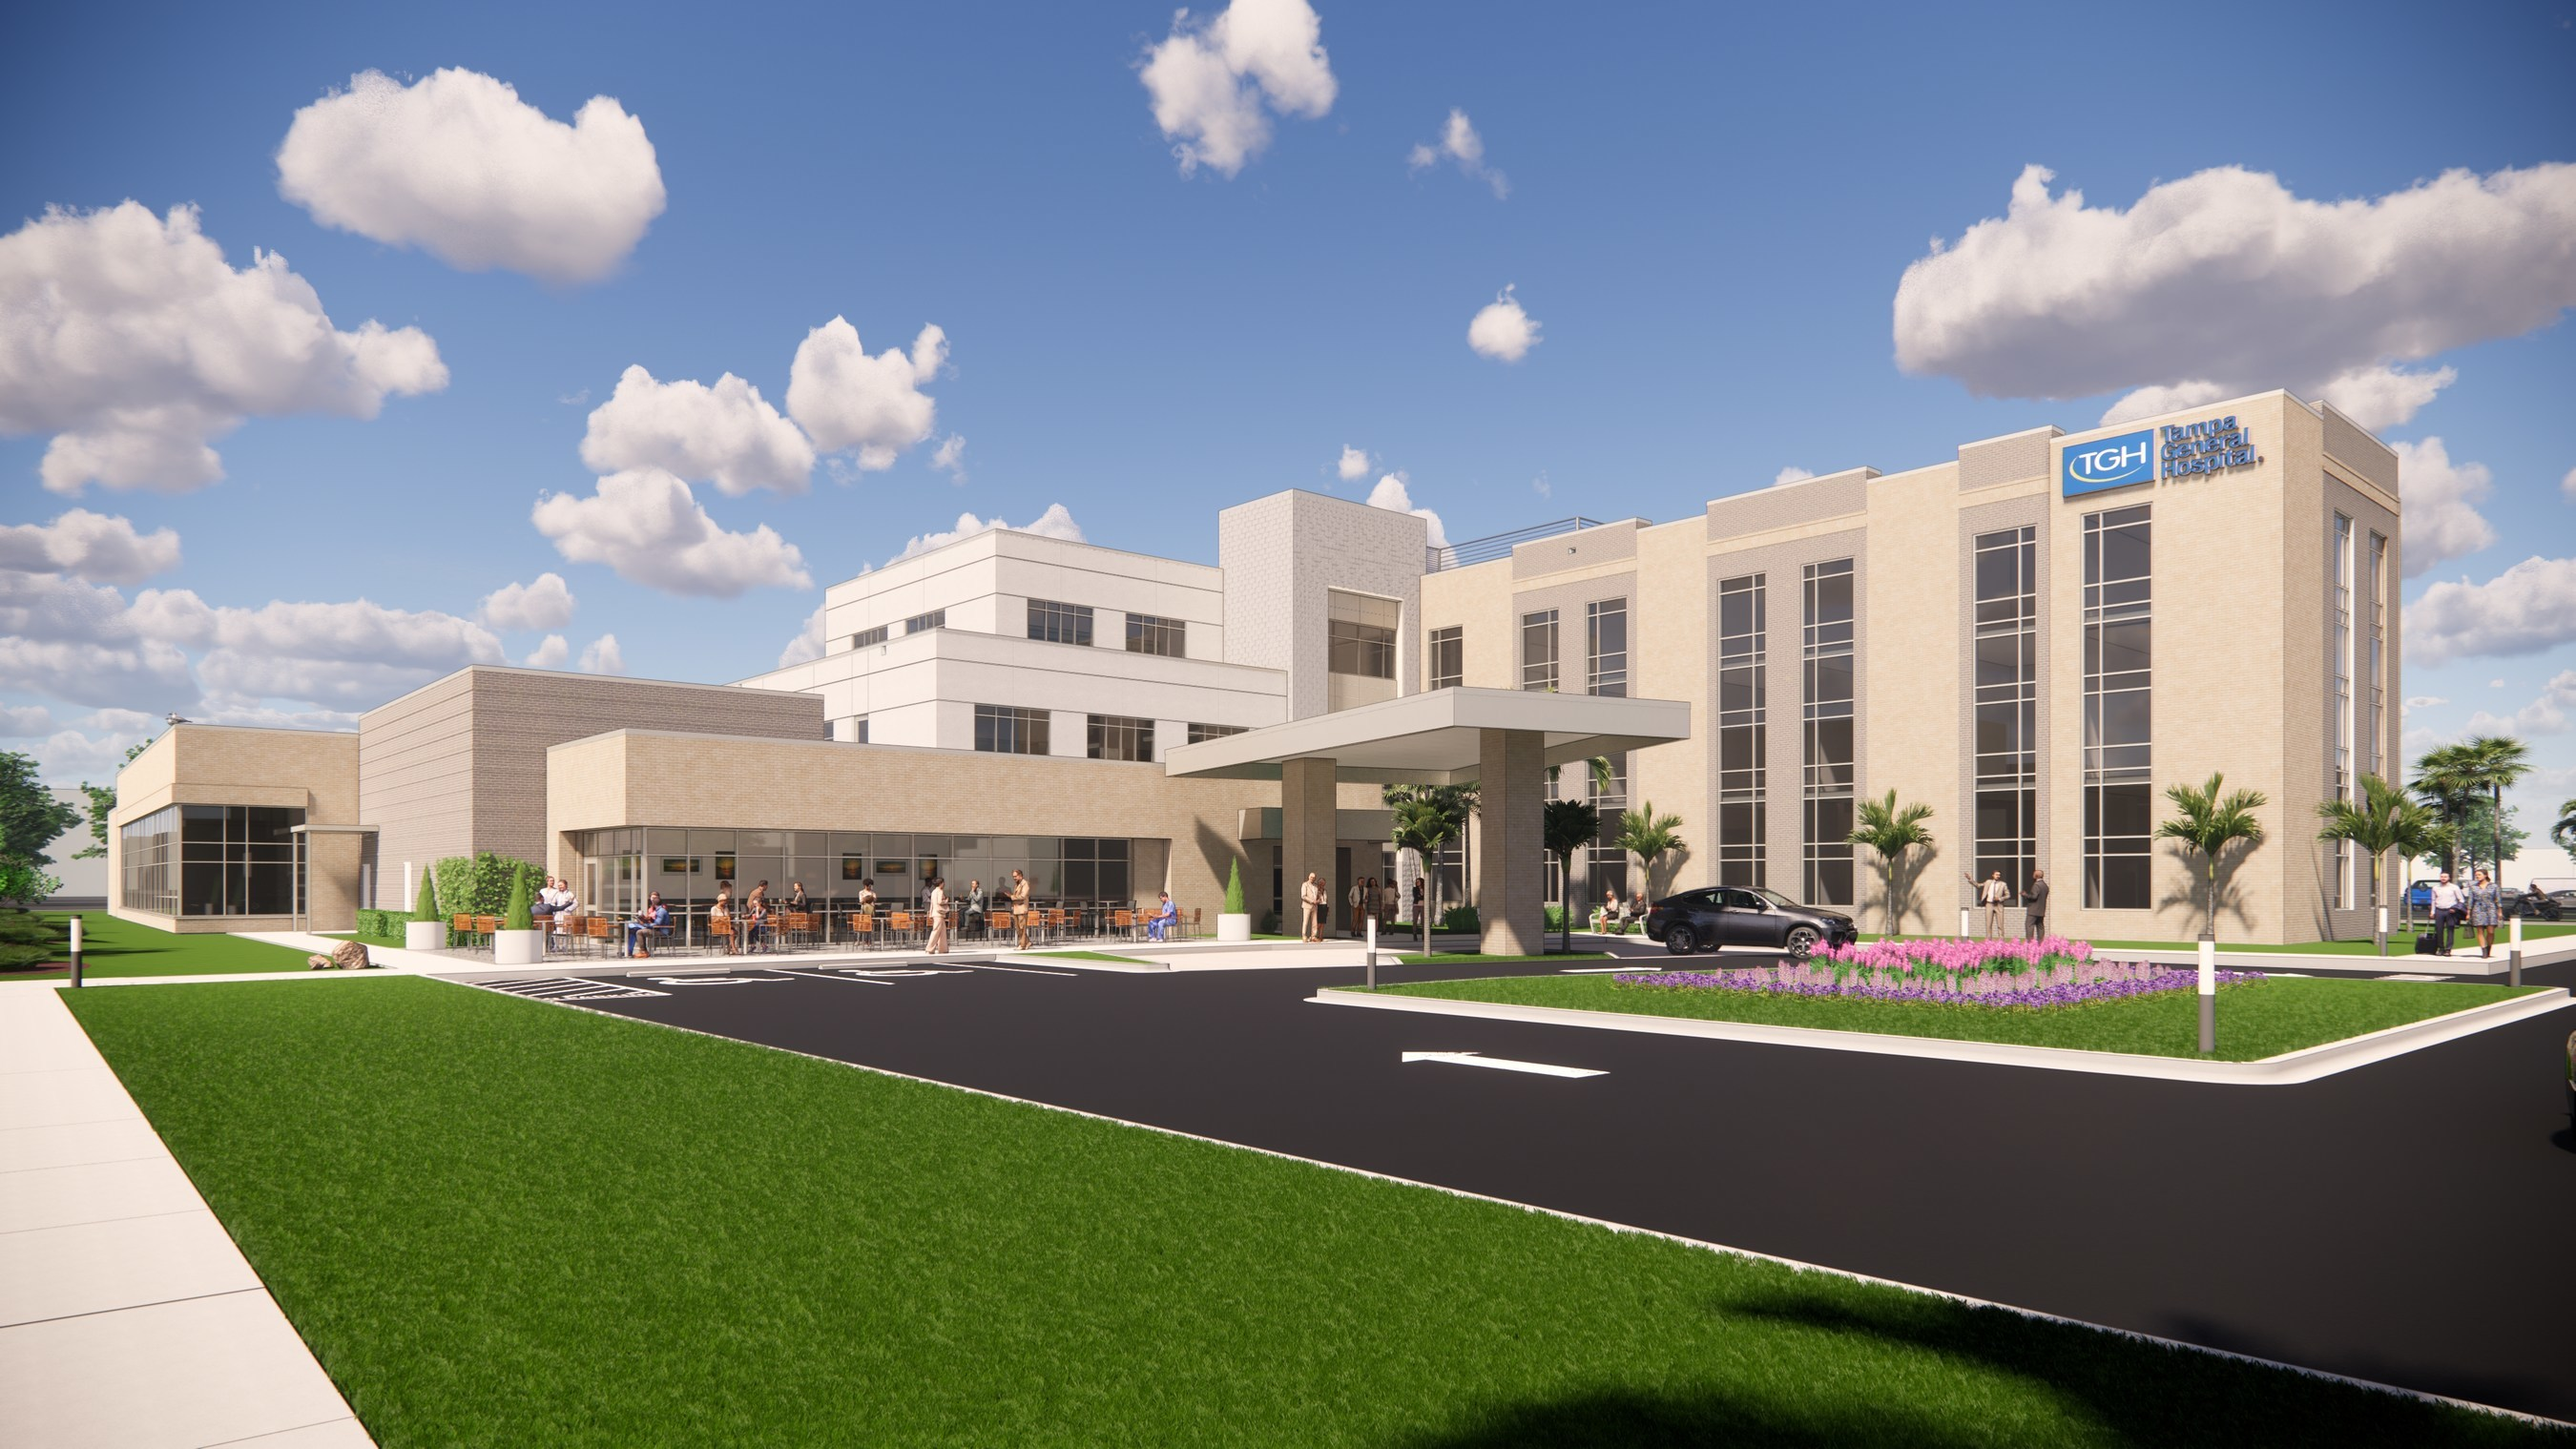 Tampa General Hospital And Kindred Healthcare Announce Partnership And Plans For A New Inpatient Rehabilitation Hospital